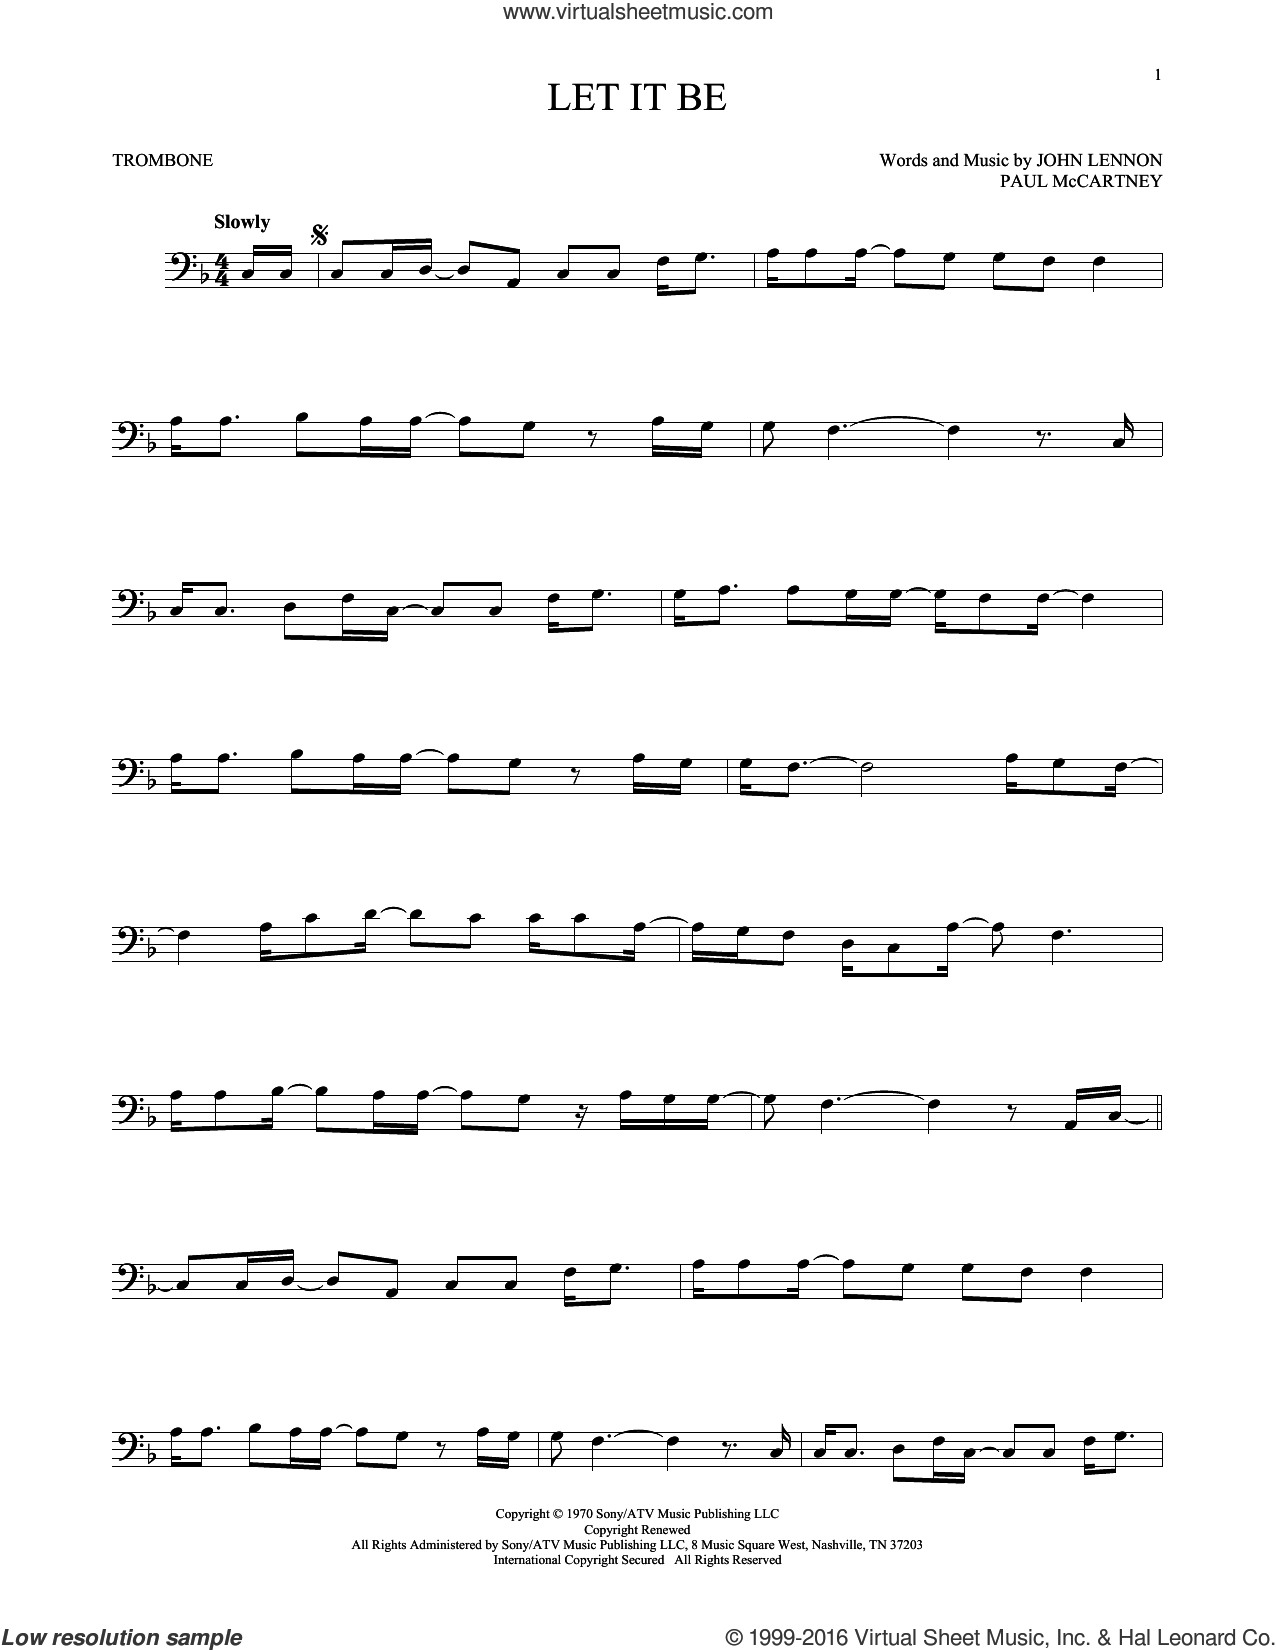 Let It Be sheet music for trombone solo by Paul McCartney